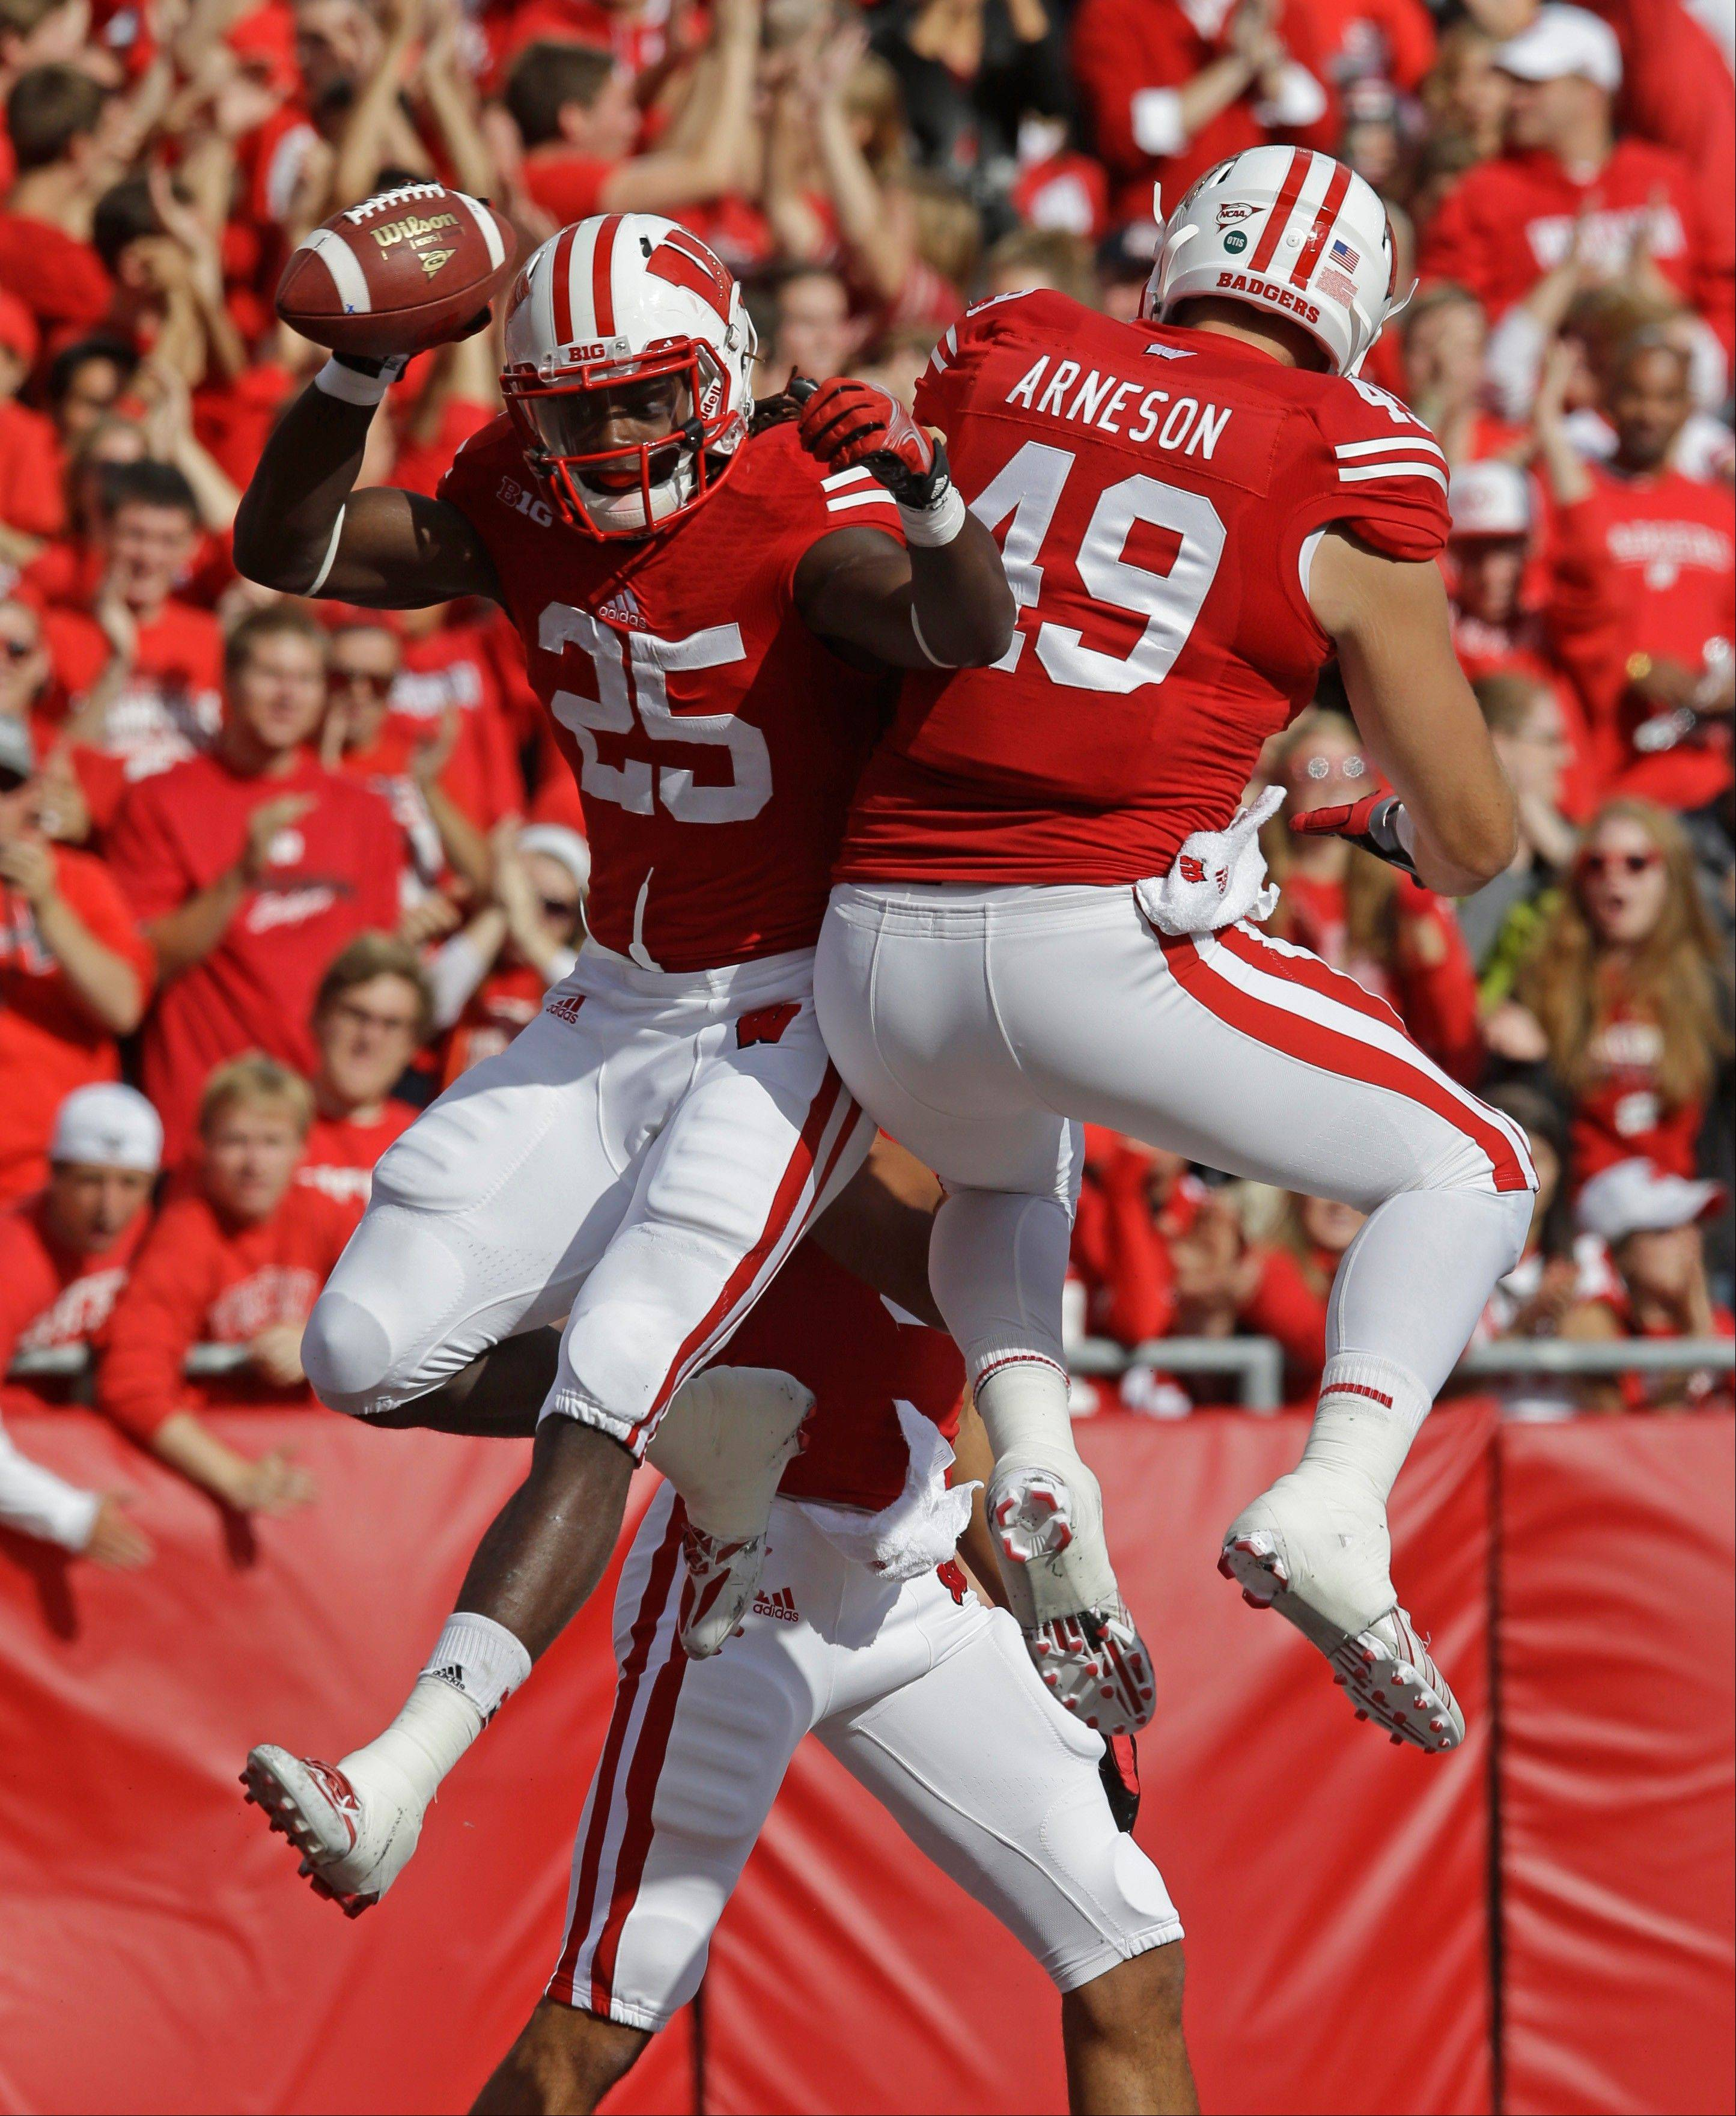 Wisconsin's Melvin Gordon (25) celebrates his touchdown run with teammate Sam Arneson (49) during the first half of Saturday's game against Purdue in Madison.